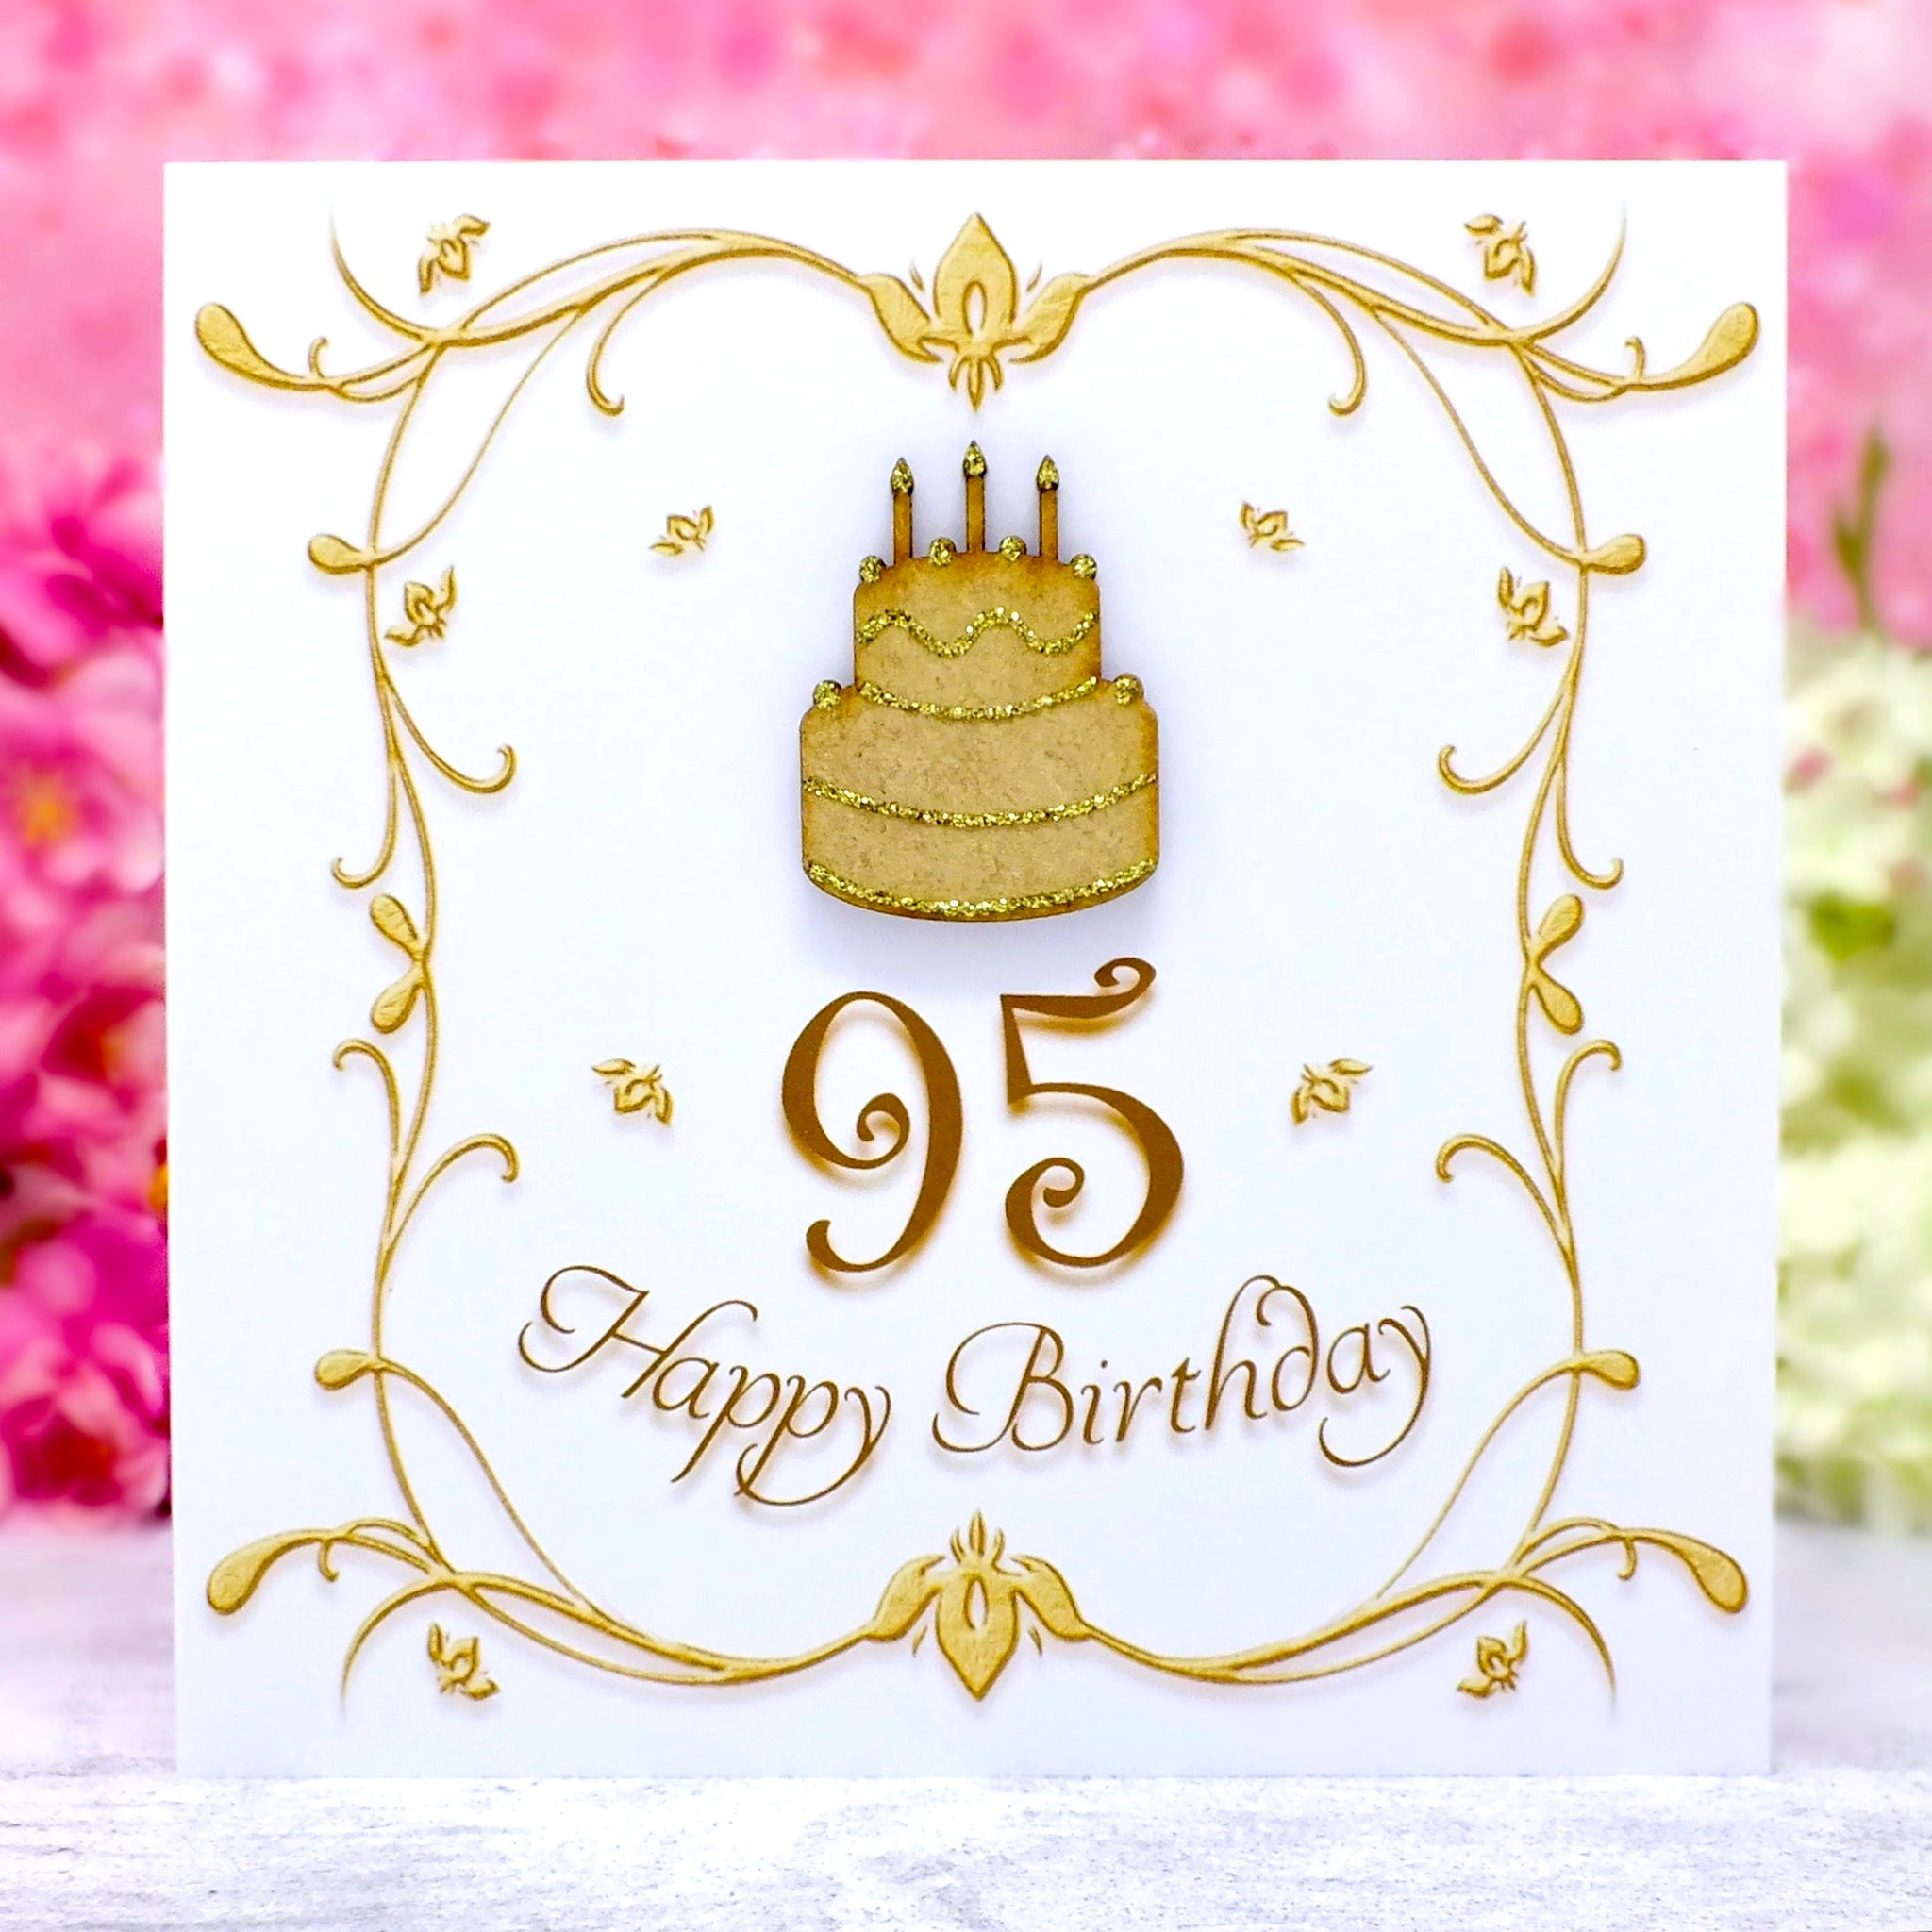 95th Birthday Card - Wooden Birthday Cake Main